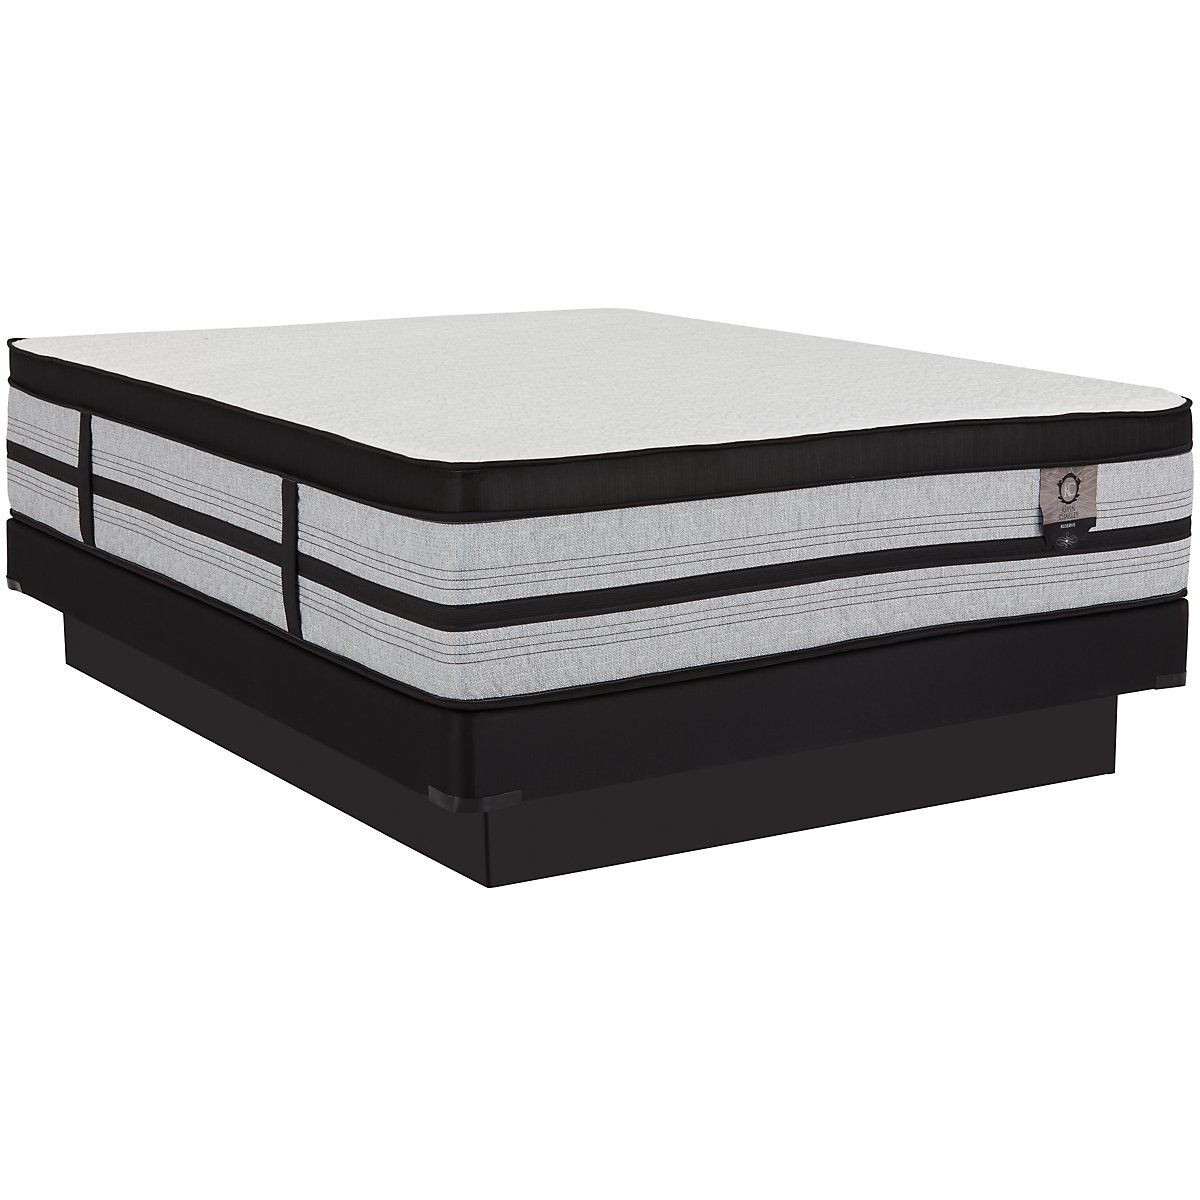 Sensation Cushion Firm Hybrid Low-Profile Mattress Set